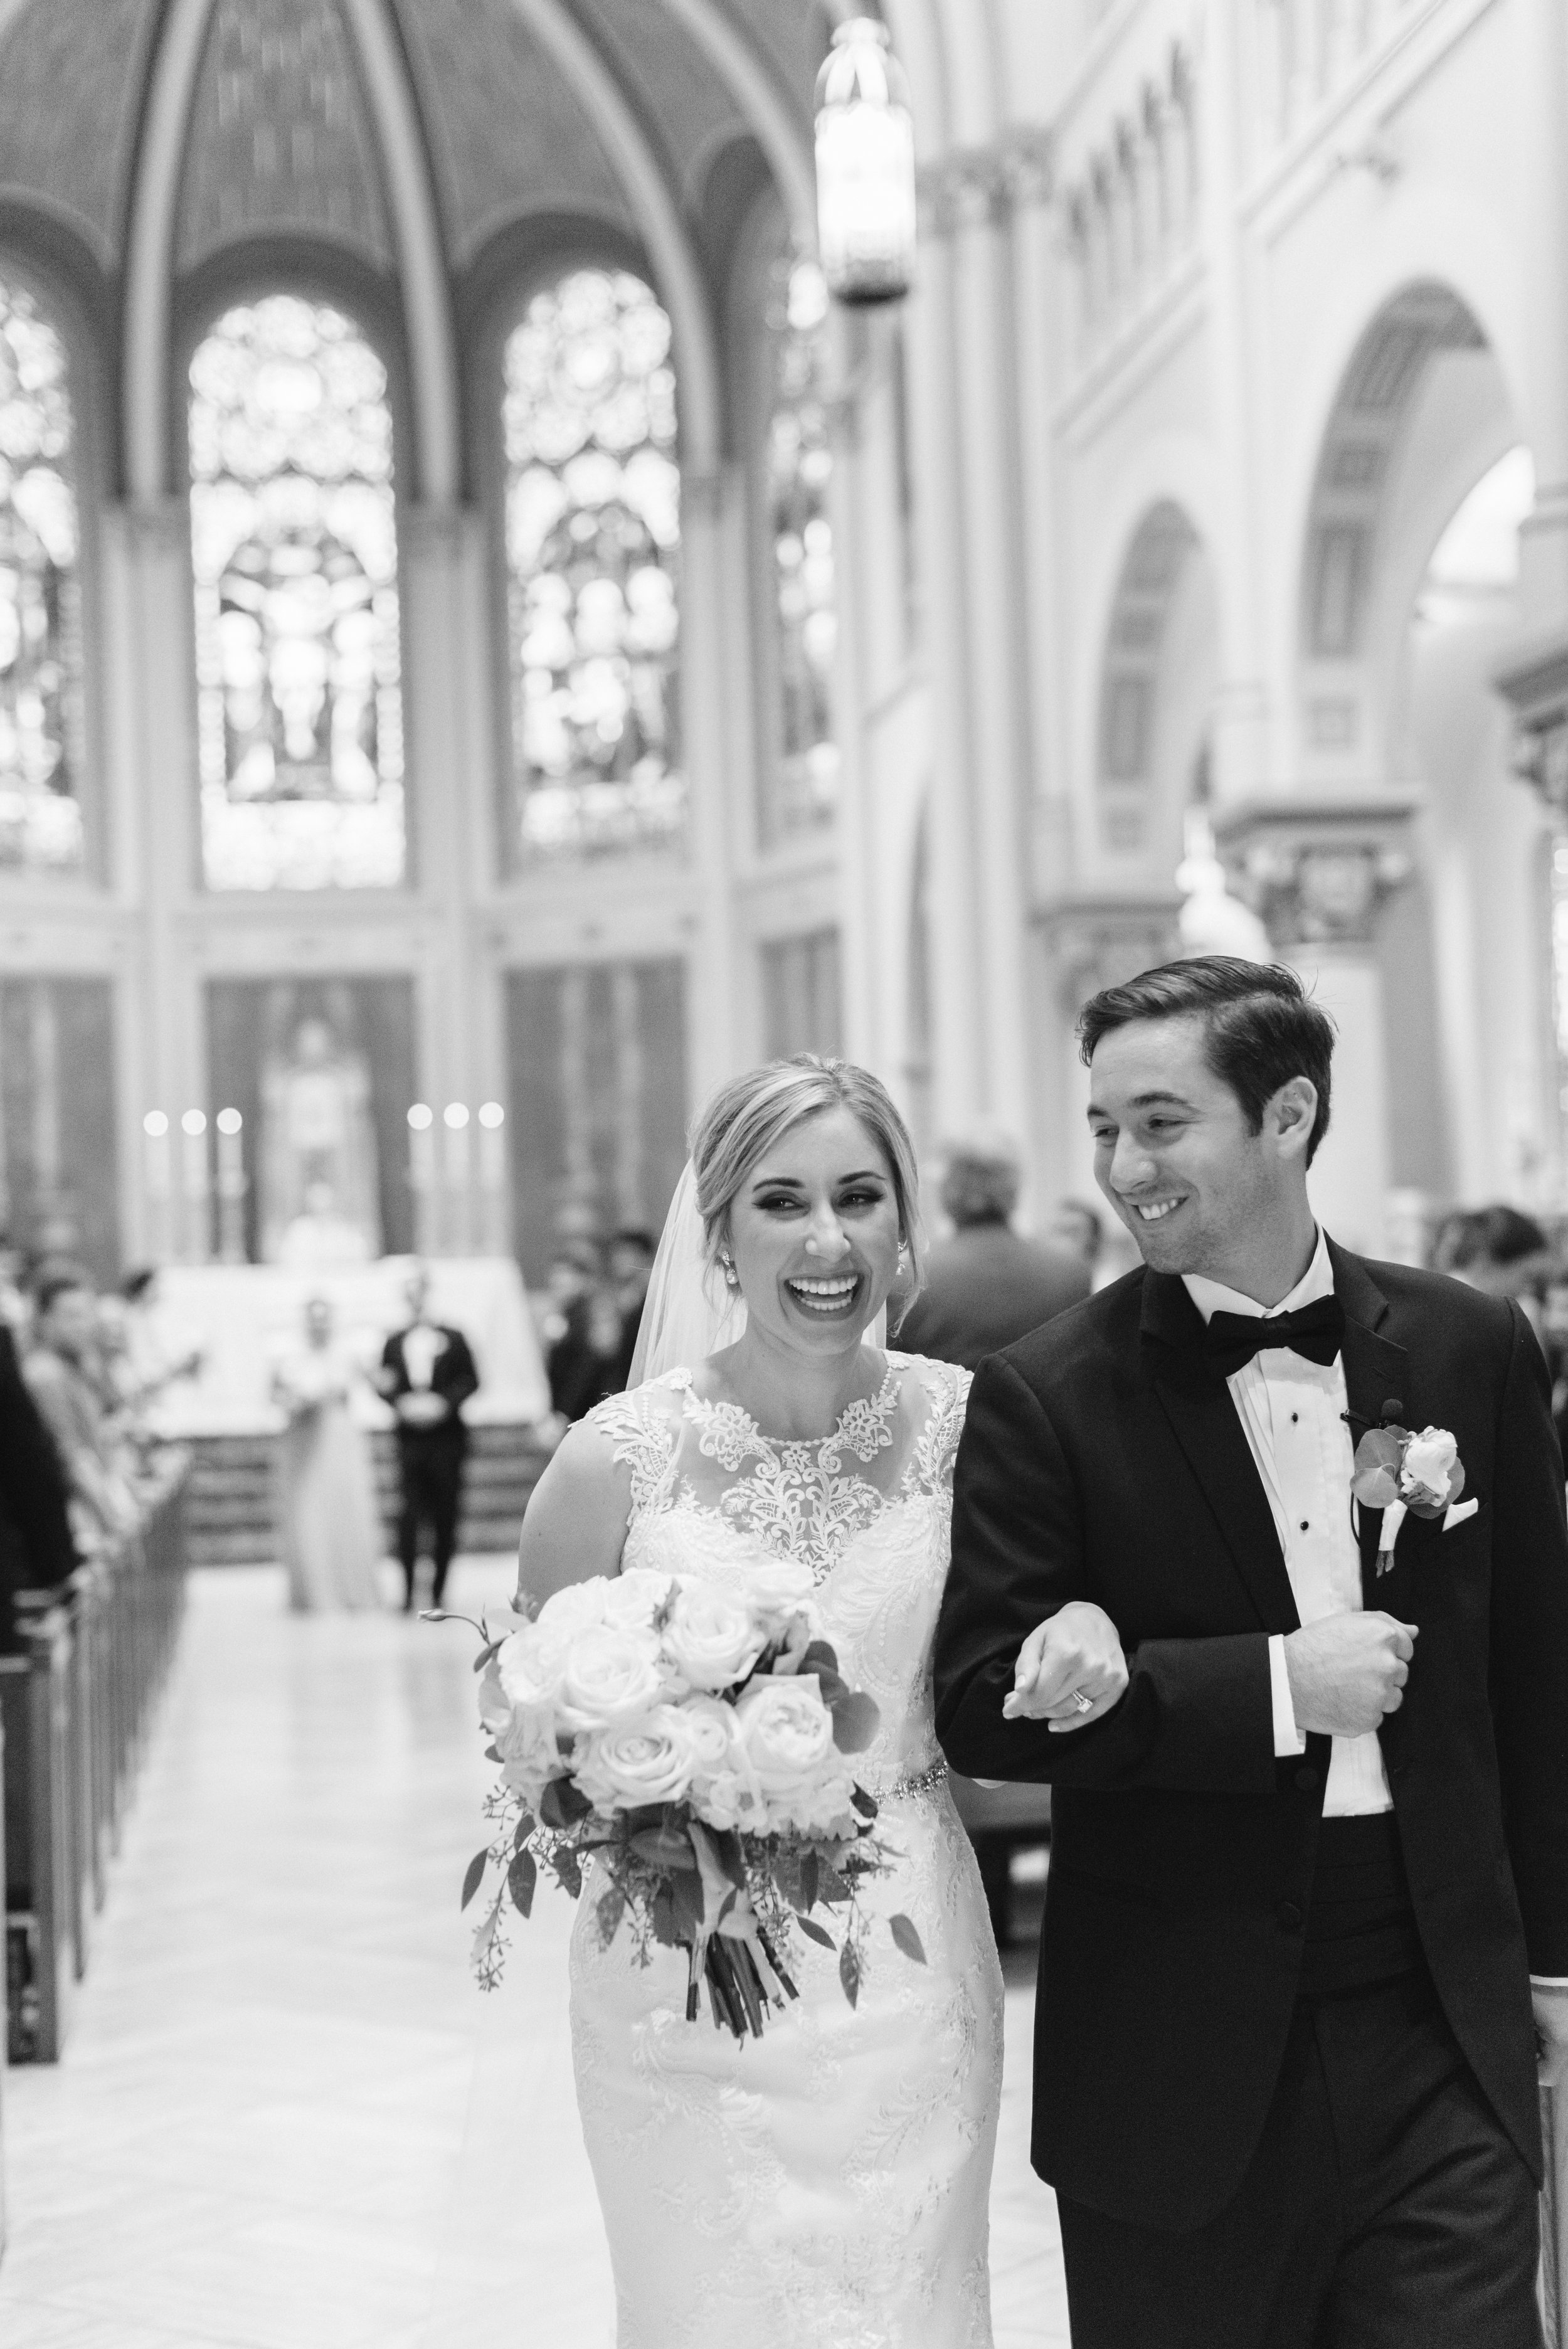 Southern Fete, Southern Wedding, Bride and Groom, Ceremony, Married, Sarah Beth Photography